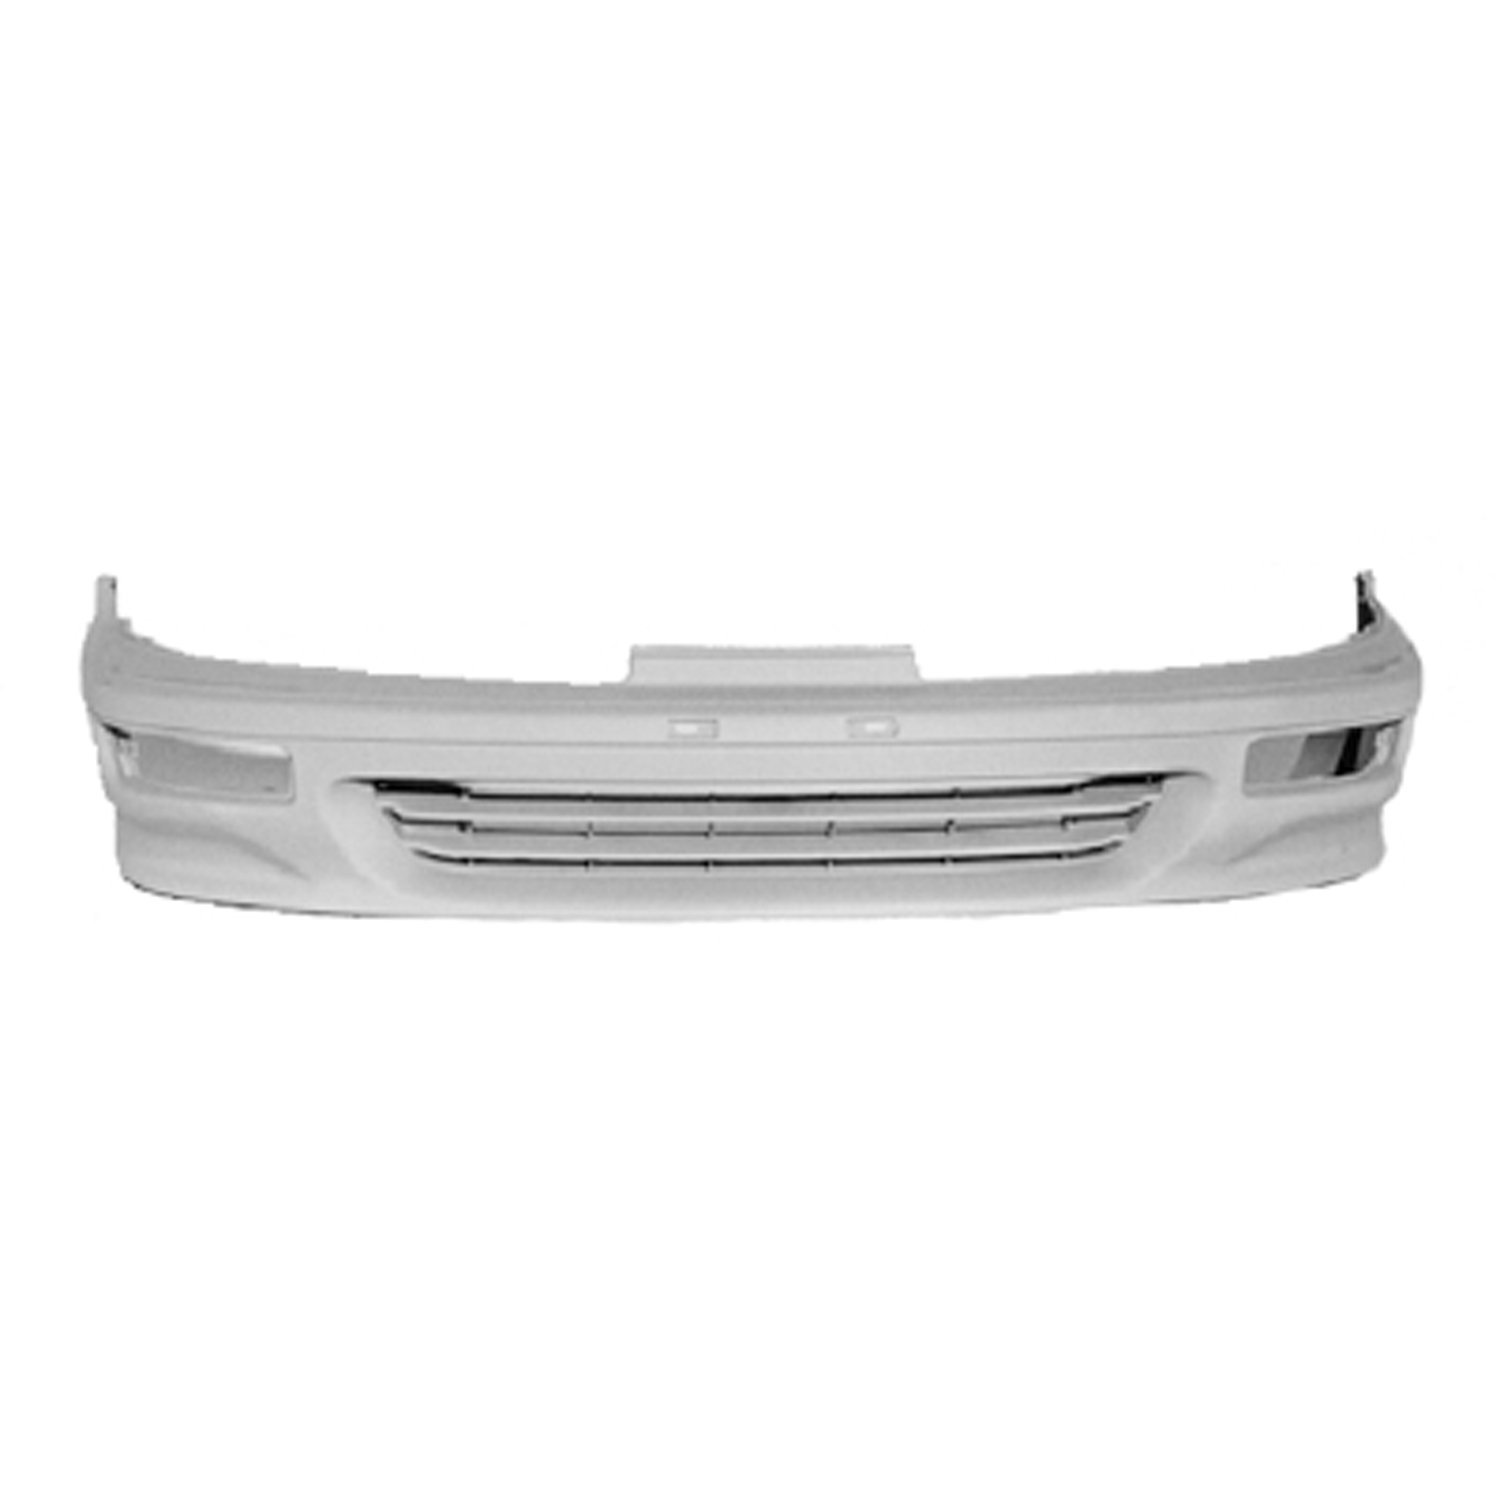 Cheap Integra Front Knuckle Find Integra Front Knuckle Deals On - 2000 acura integra front bumper